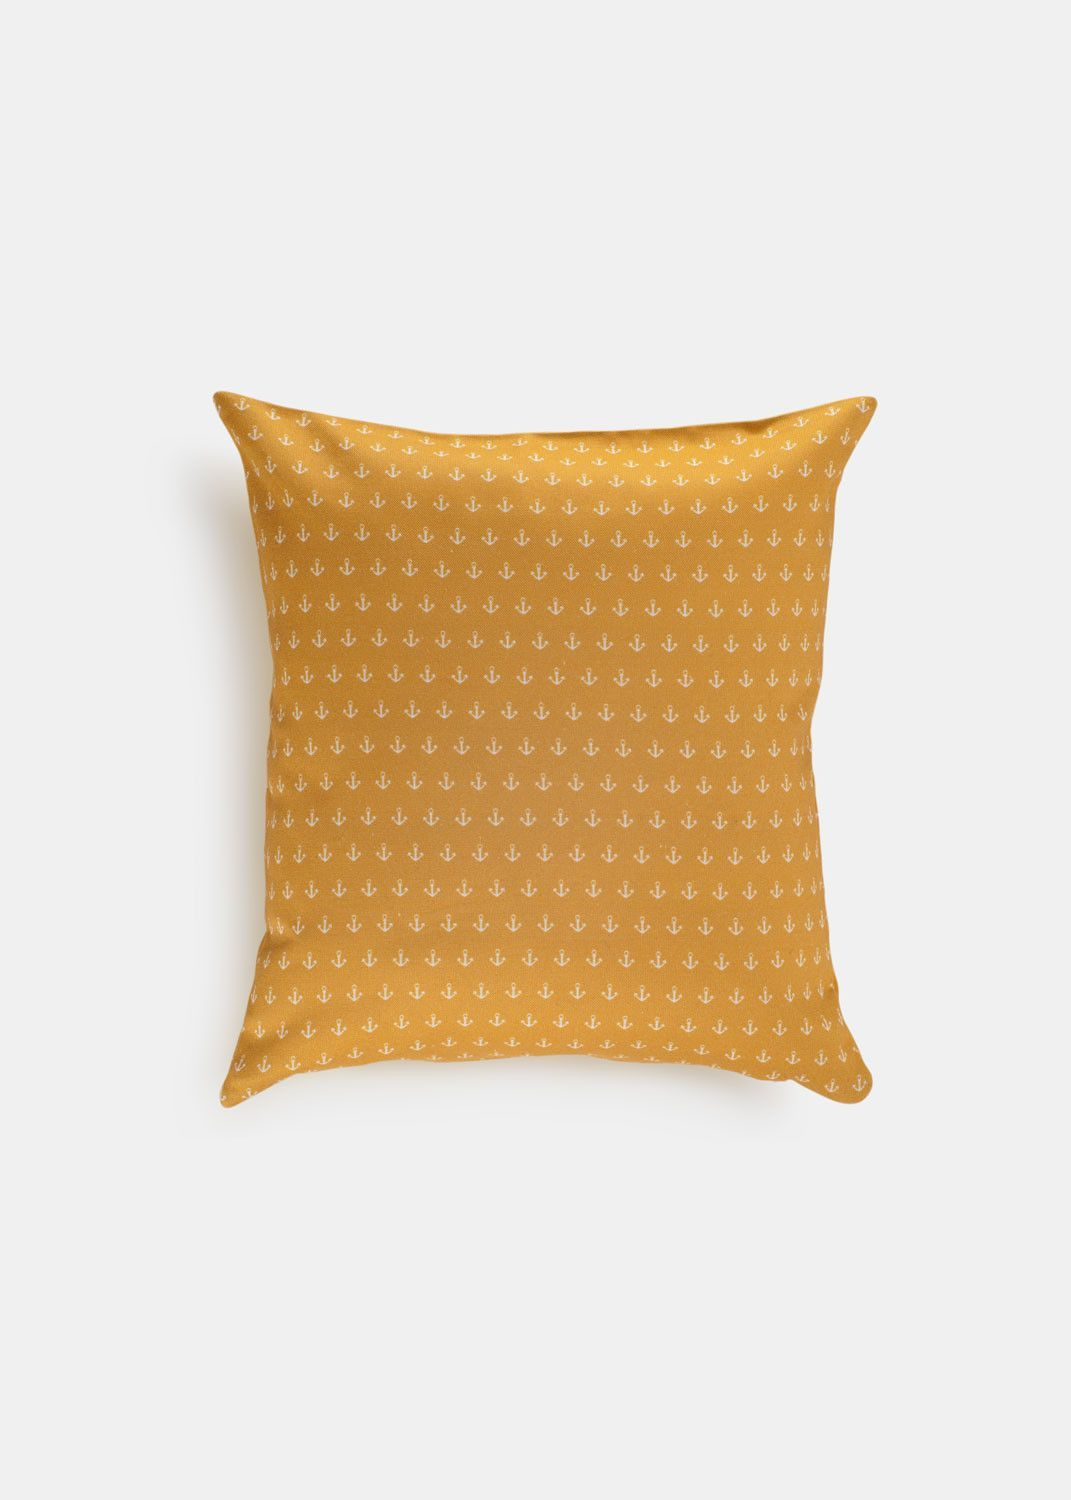 Anchor pillow cover products